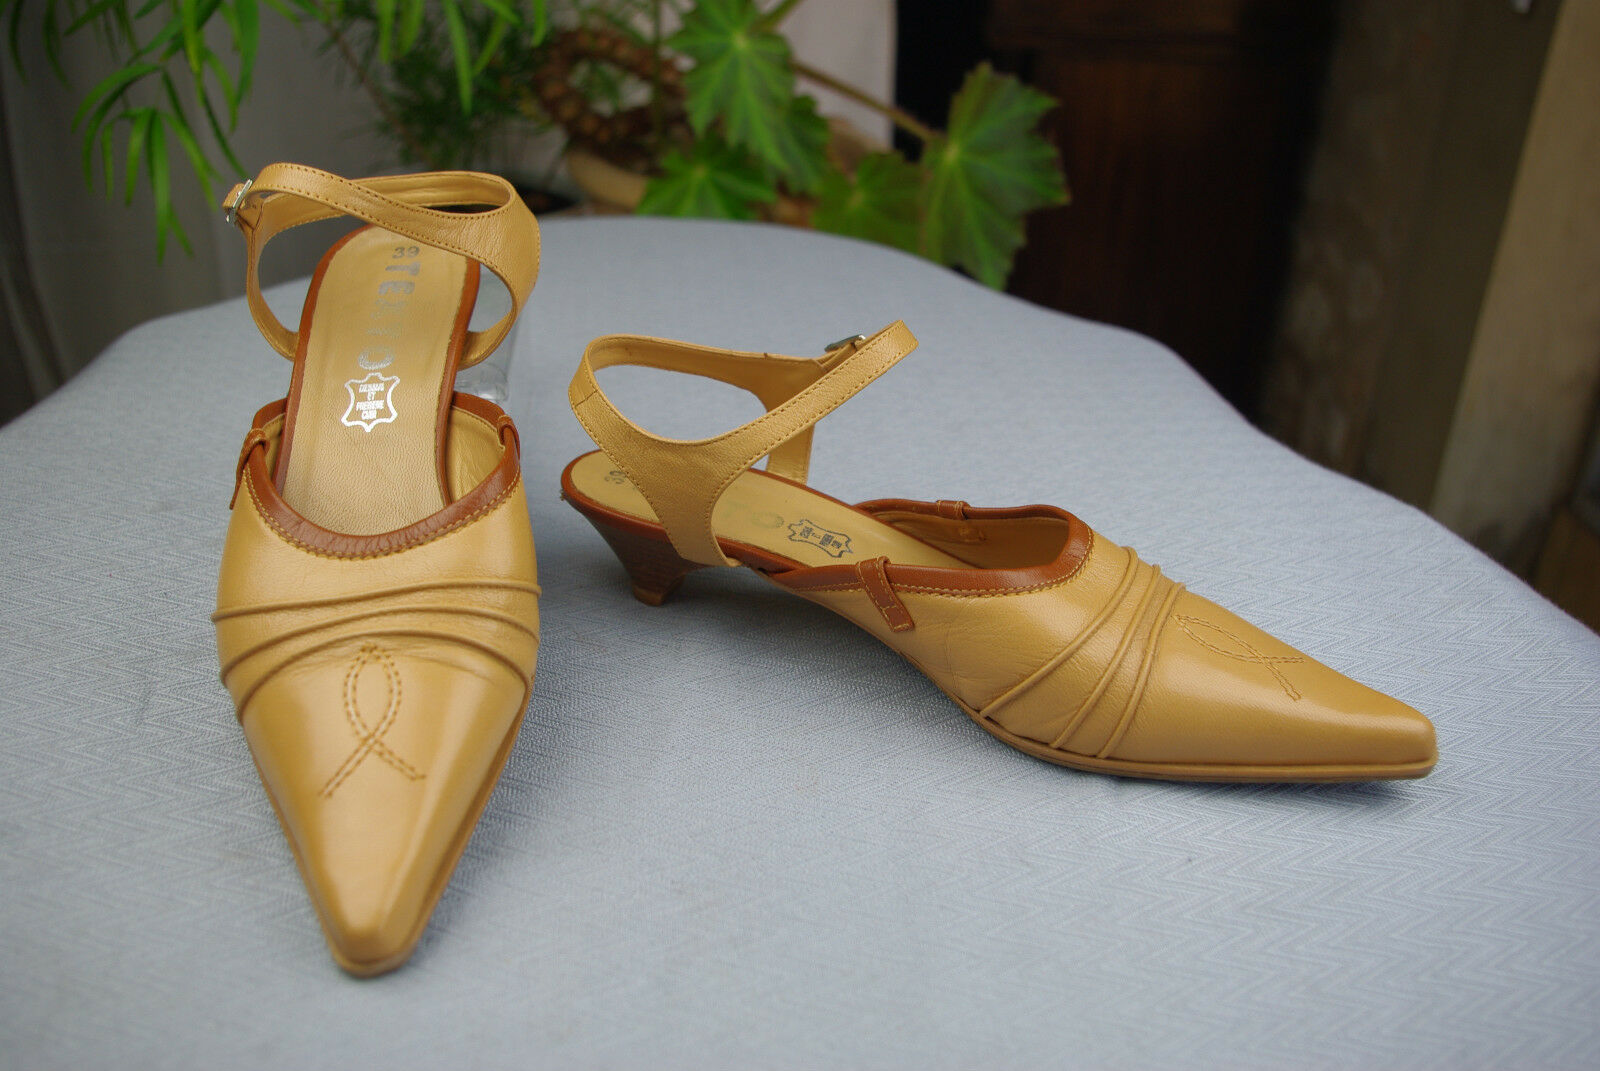 Open court shoes TEXTO Beige Leather Camel and Brown T 38 VERY GOOD CONDITION